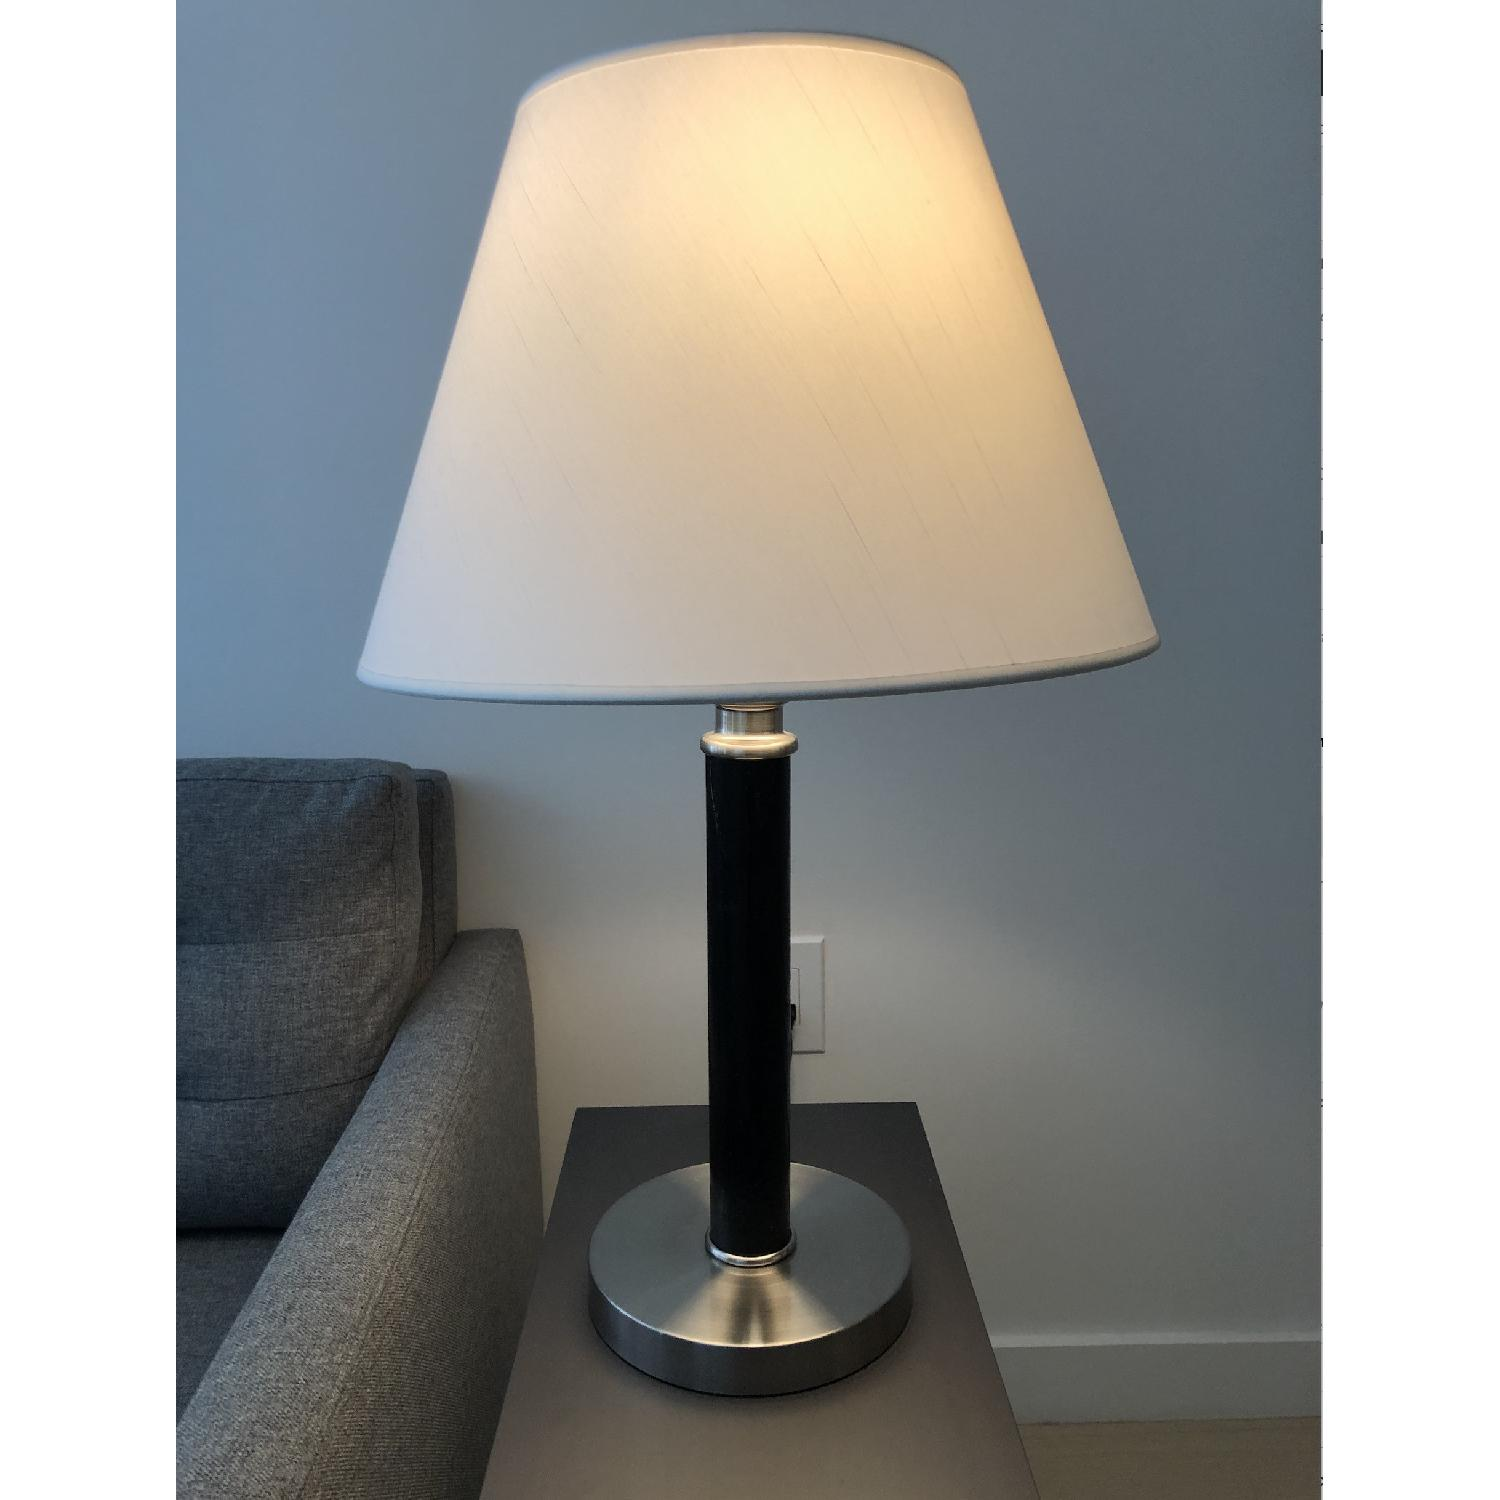 Ethan Allen Chrome Table Lamp in Wood Finish - image-3